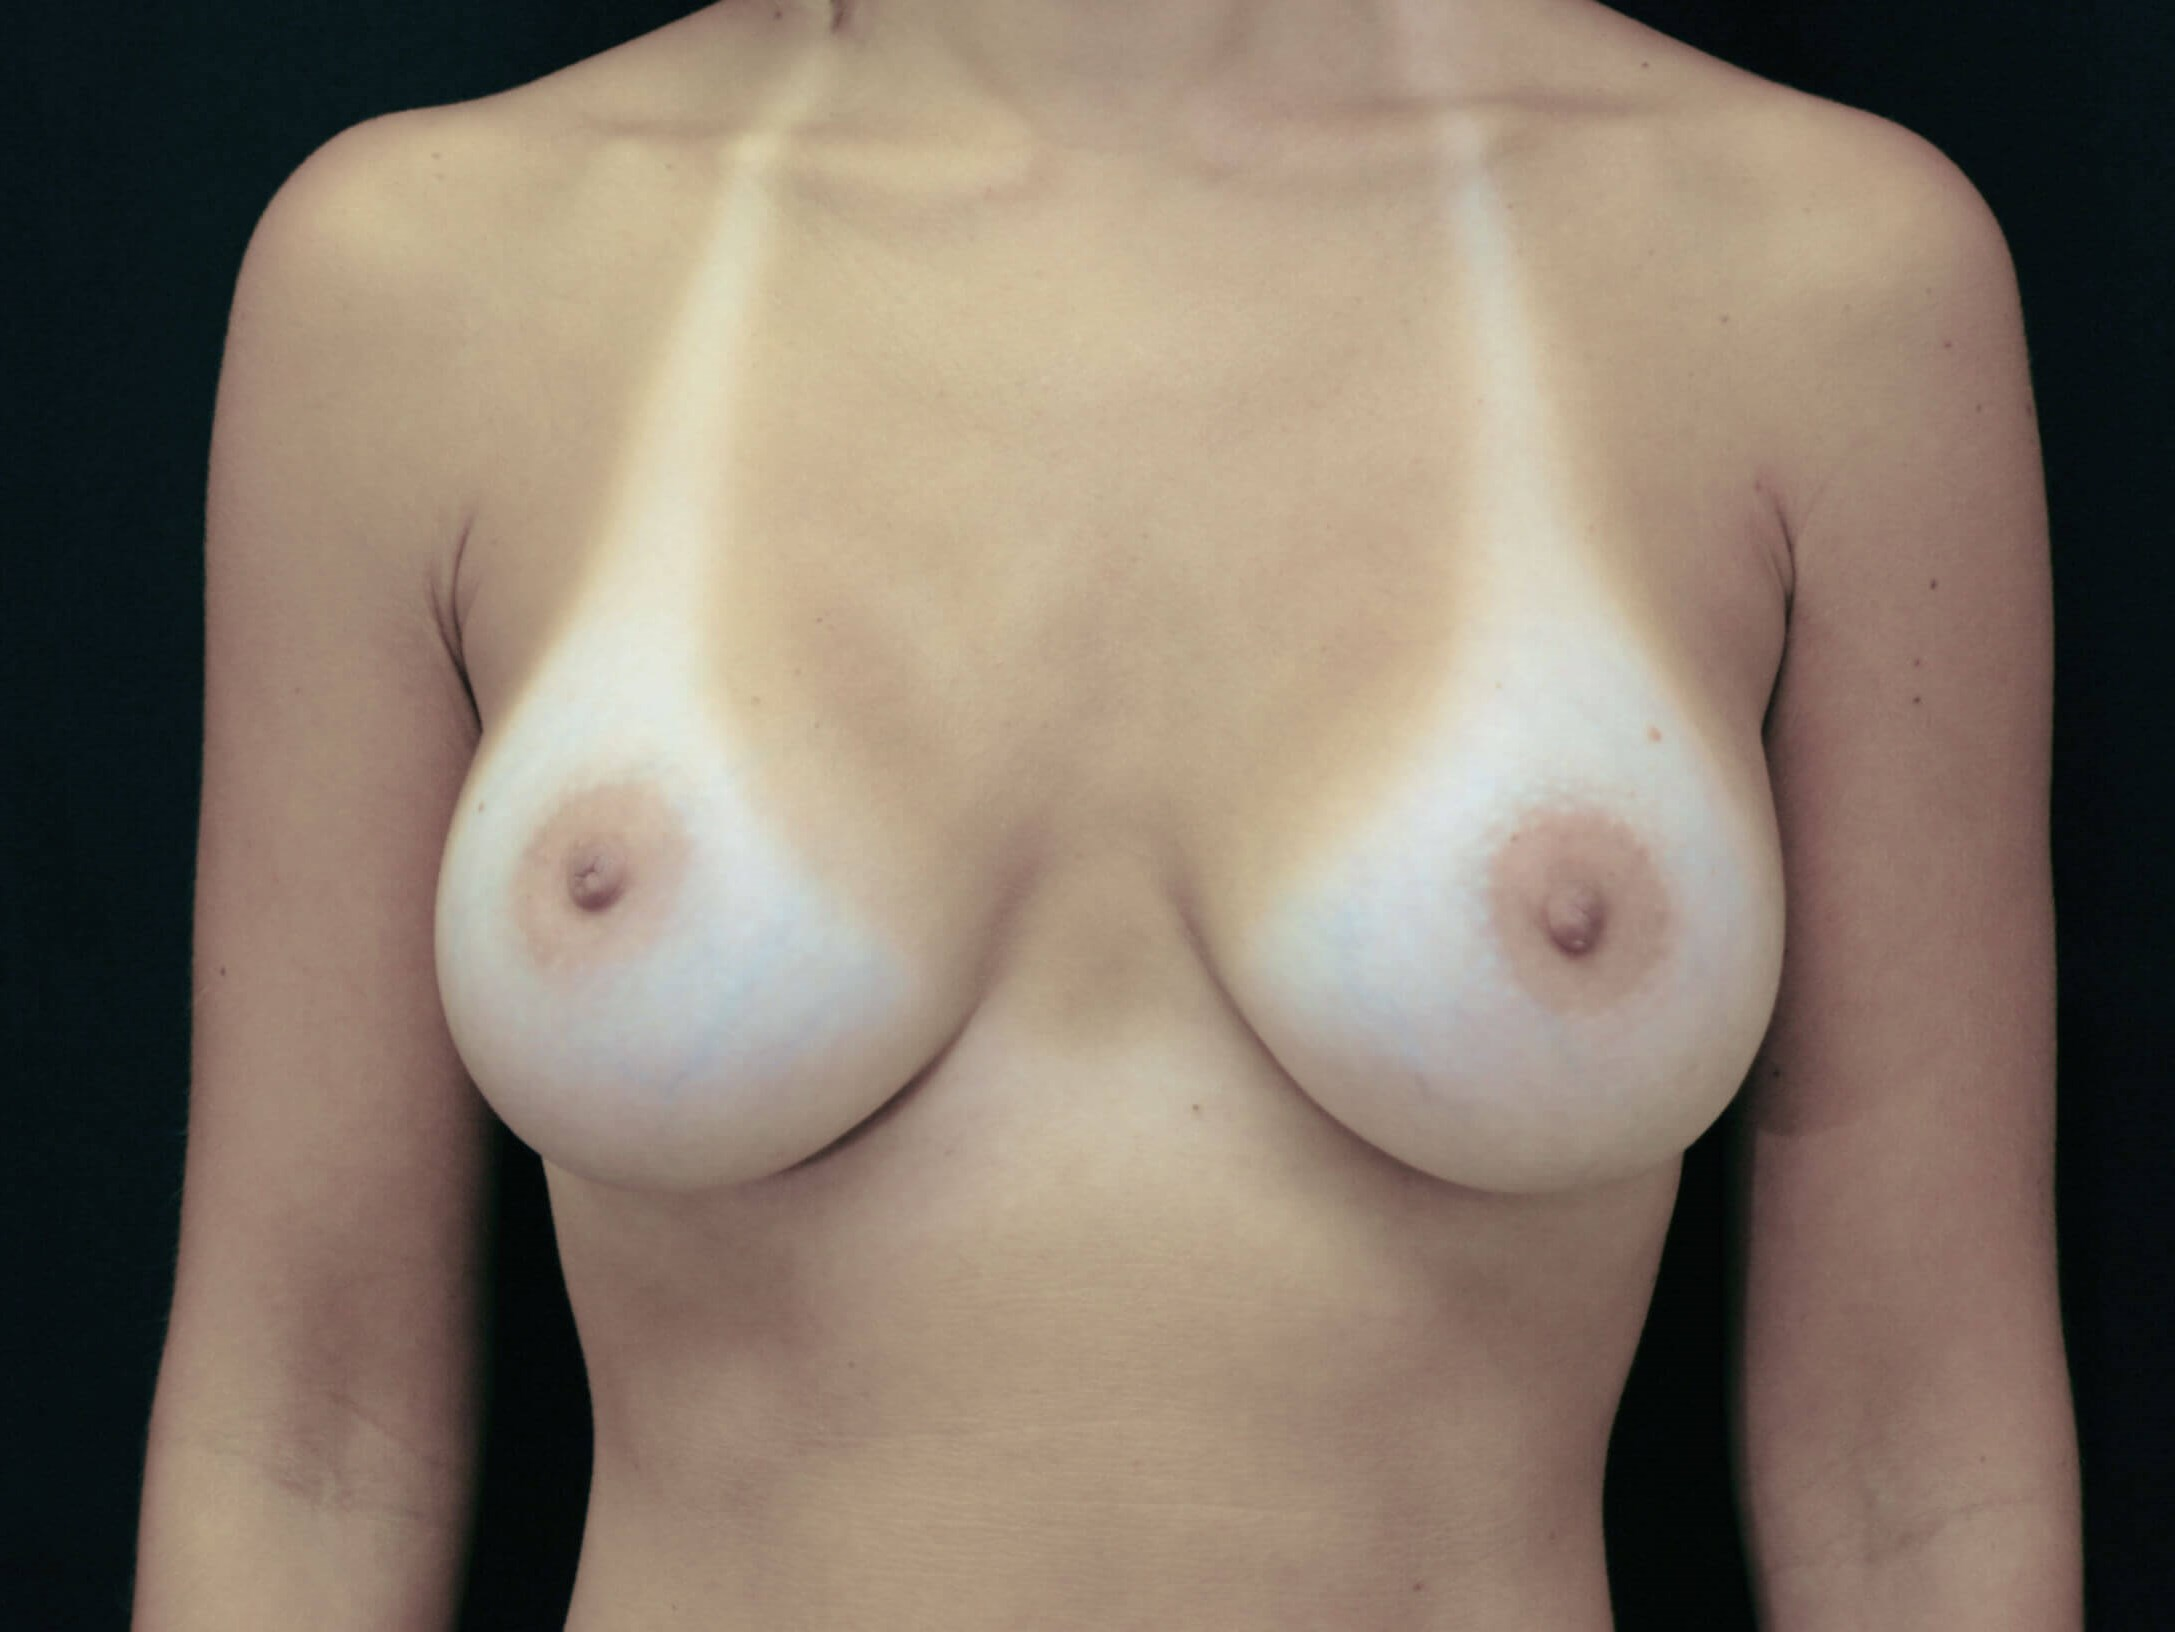 DALLAS, TEXAS WOMAN HAS BREAST AUGMENTATION WITH SALINE IMPLANTS